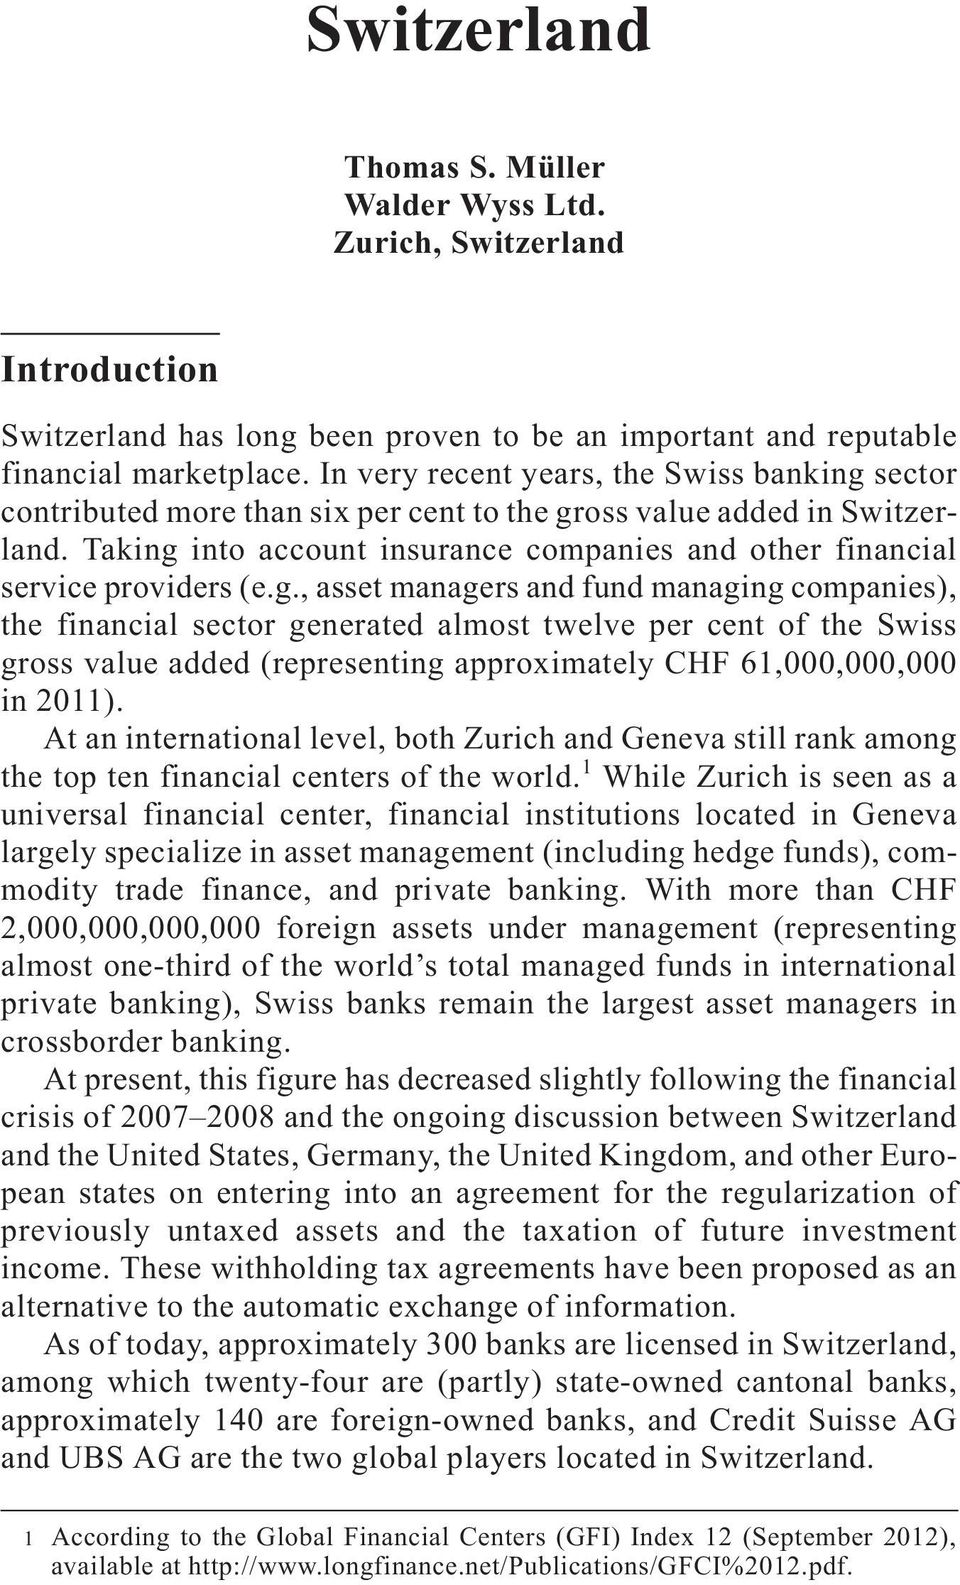 Taking into account insurance companies and other financial service providers (e.g., asset managers and fund managing companies), the financial sector generated almost twelve per cent of the Swiss gross value added (representing approximately CHF 61,000,000,000 in 2011).